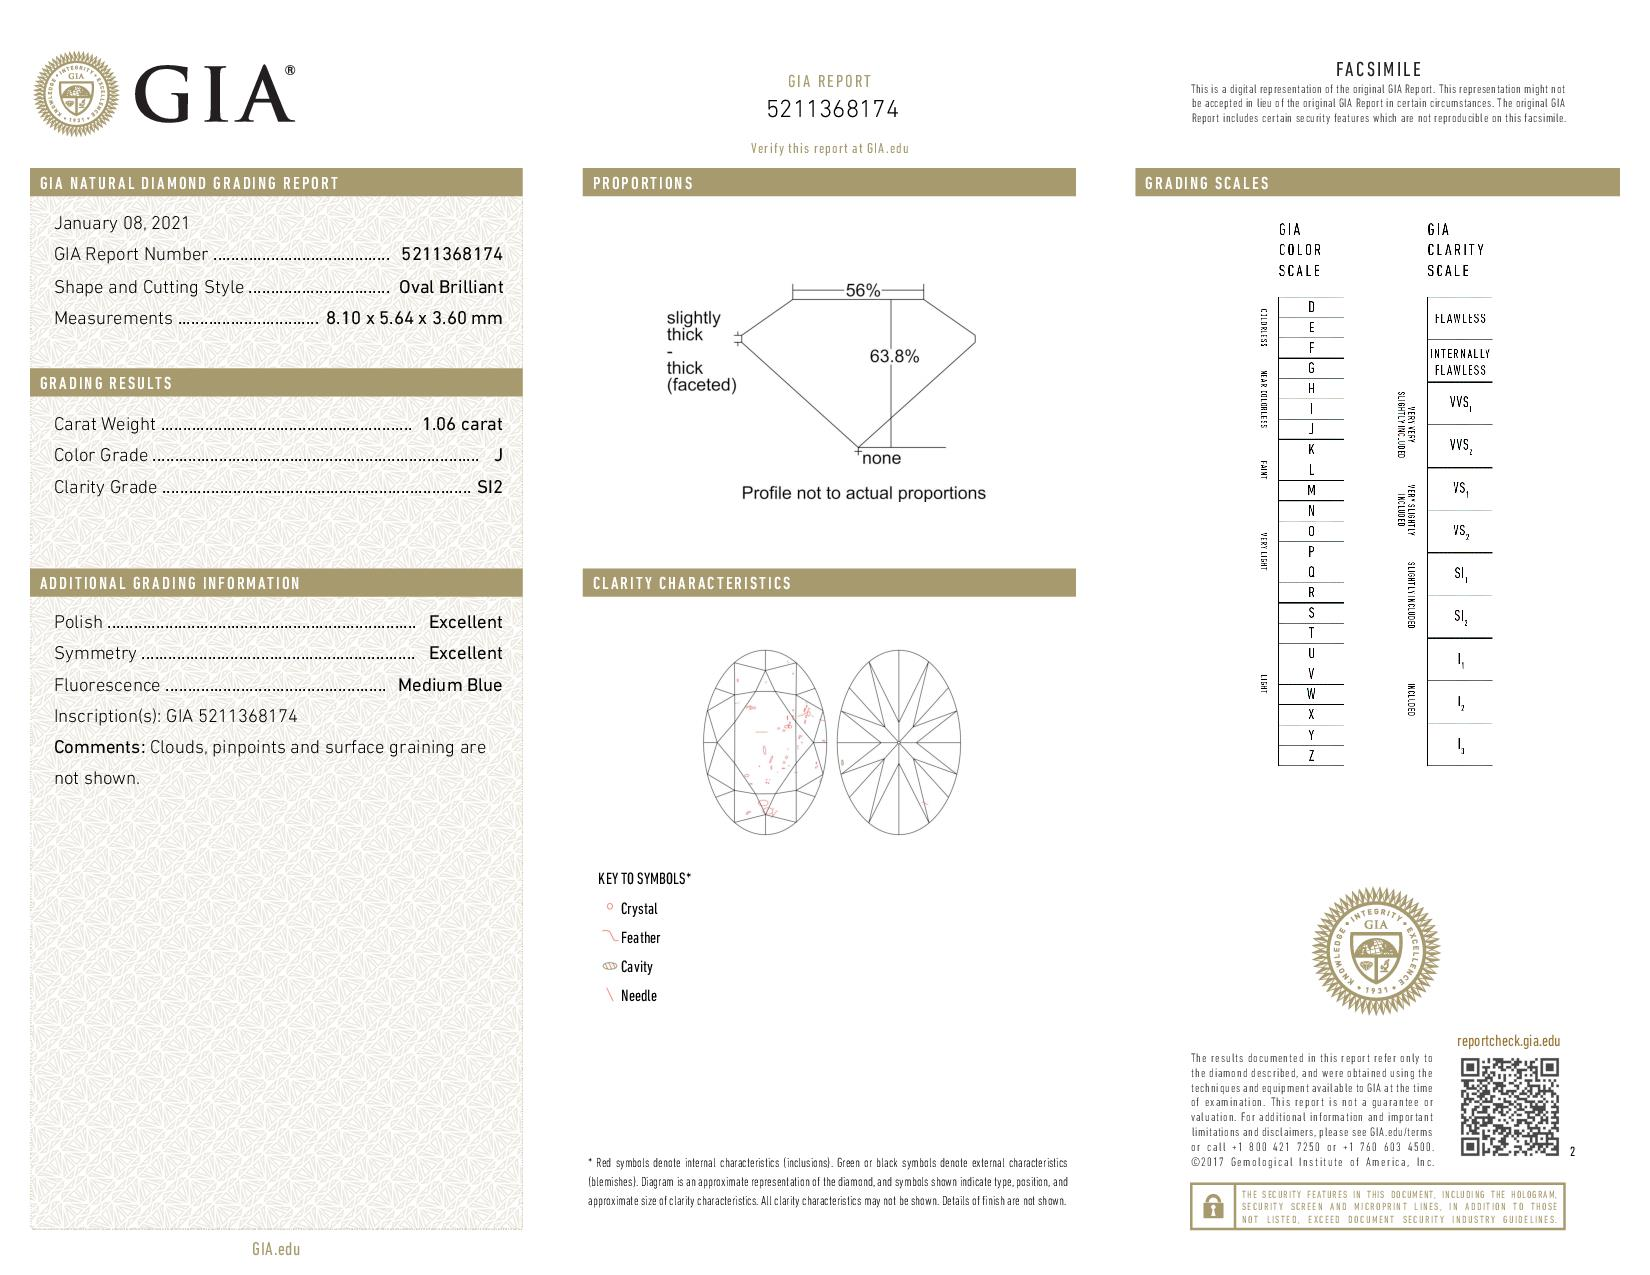 This is a 1.06 carat oval shape, J color, SI2 clarity natural diamond accompanied by a GIA grading report.